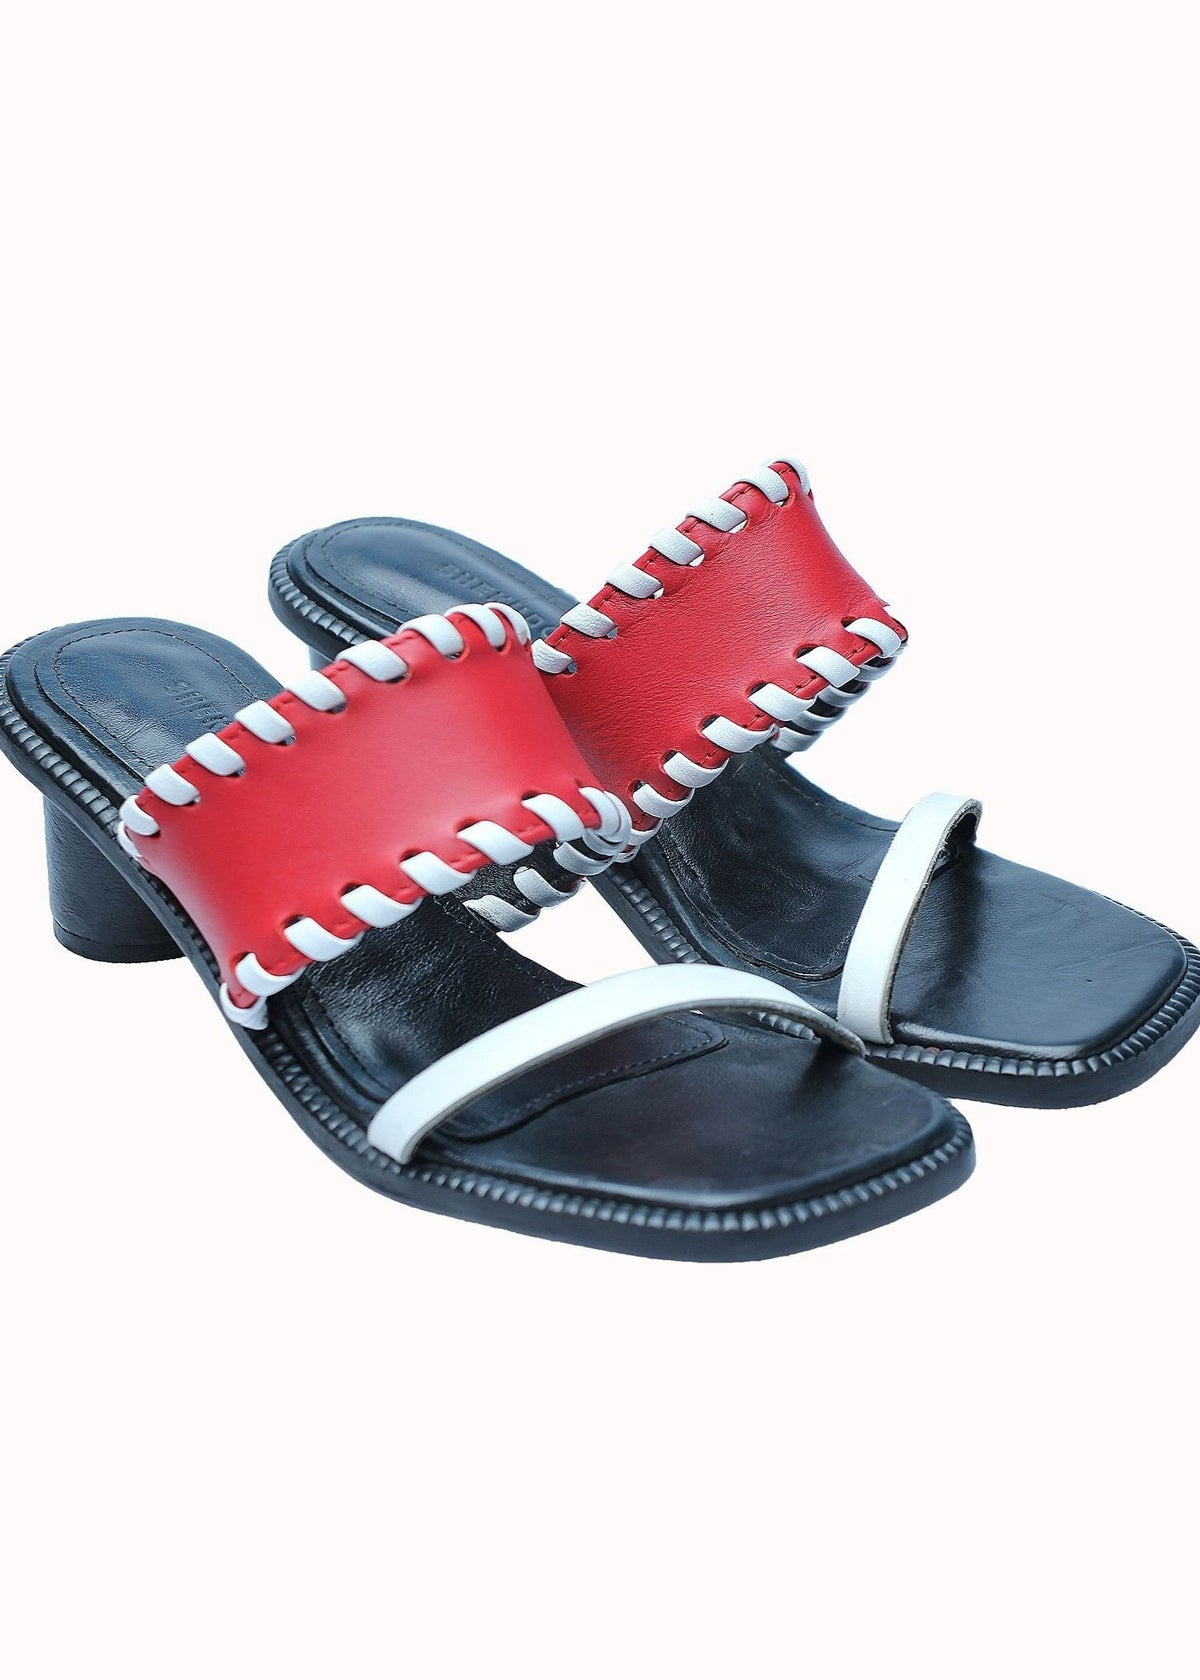 Black and red Shekudo leather braided sandal